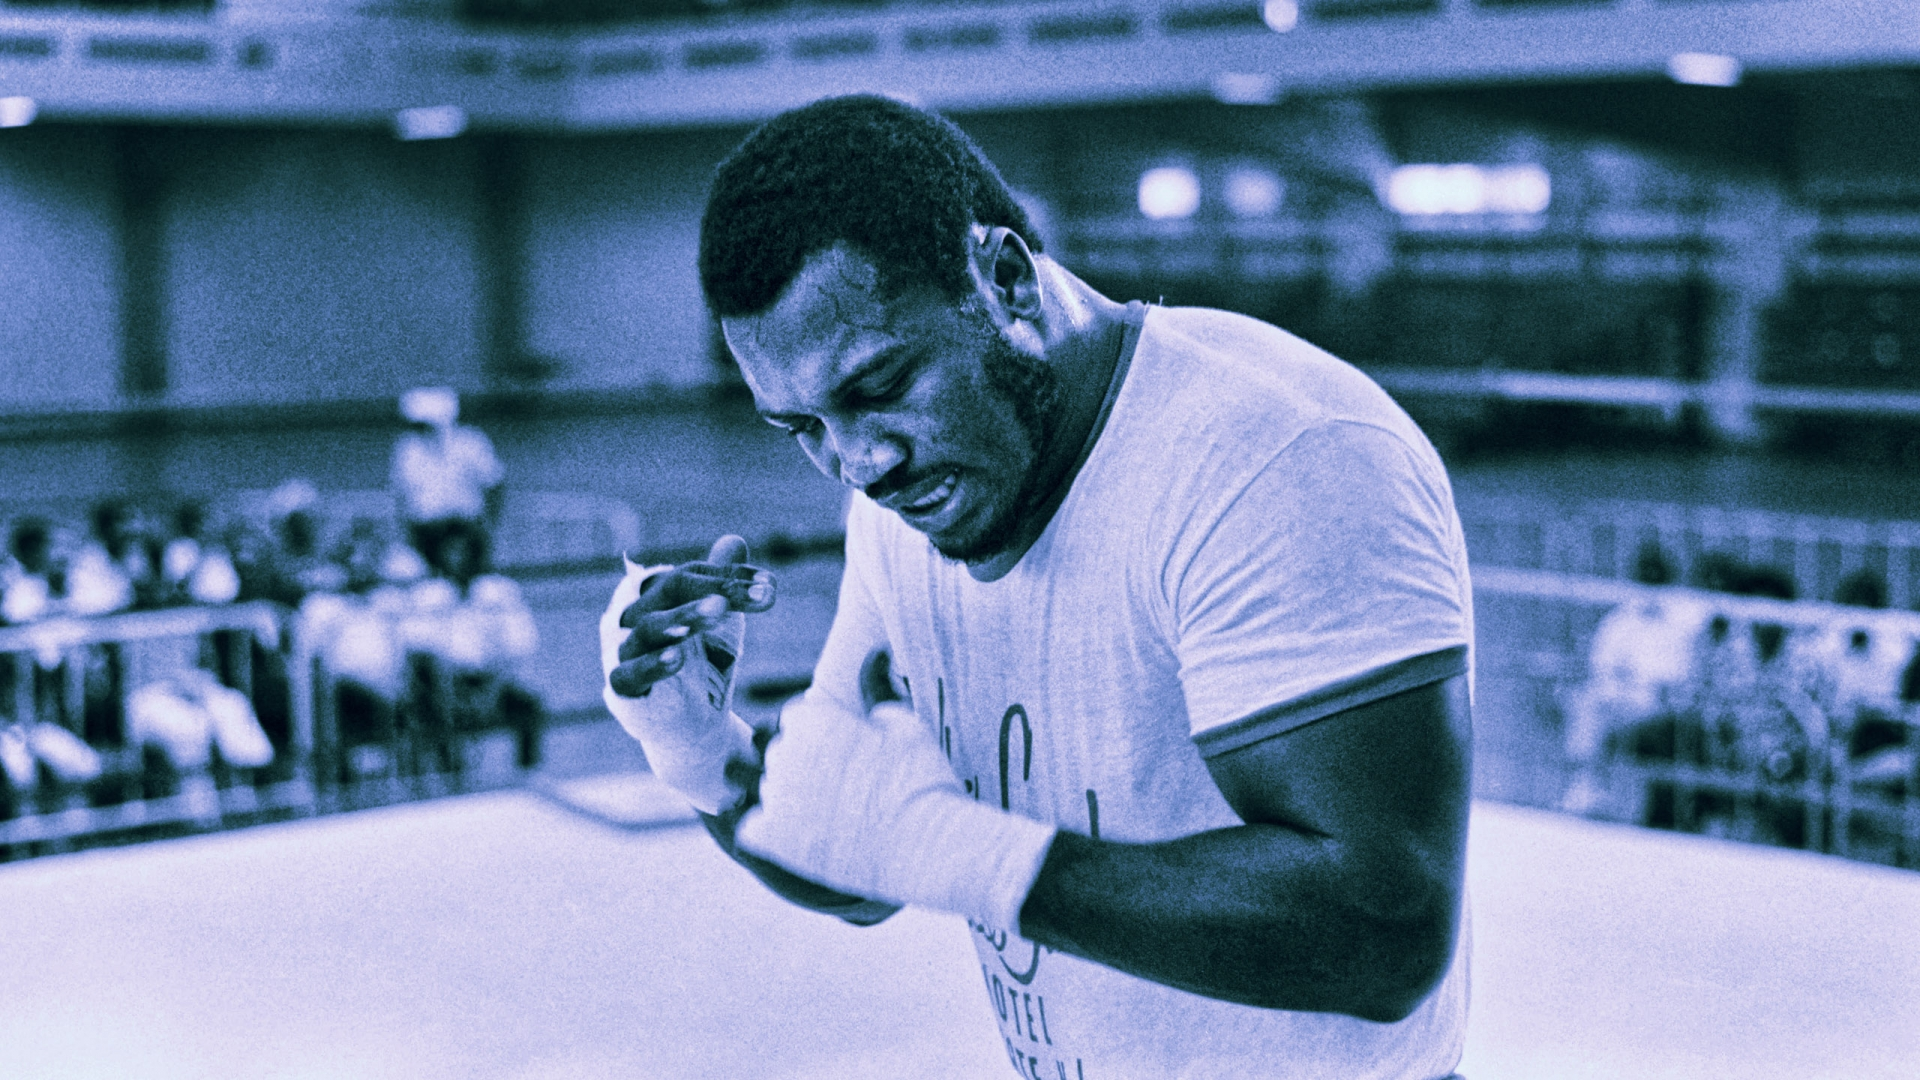 Smokin Joe Frazier boxing men people wallpaper 1920x1080 29133 1920x1080